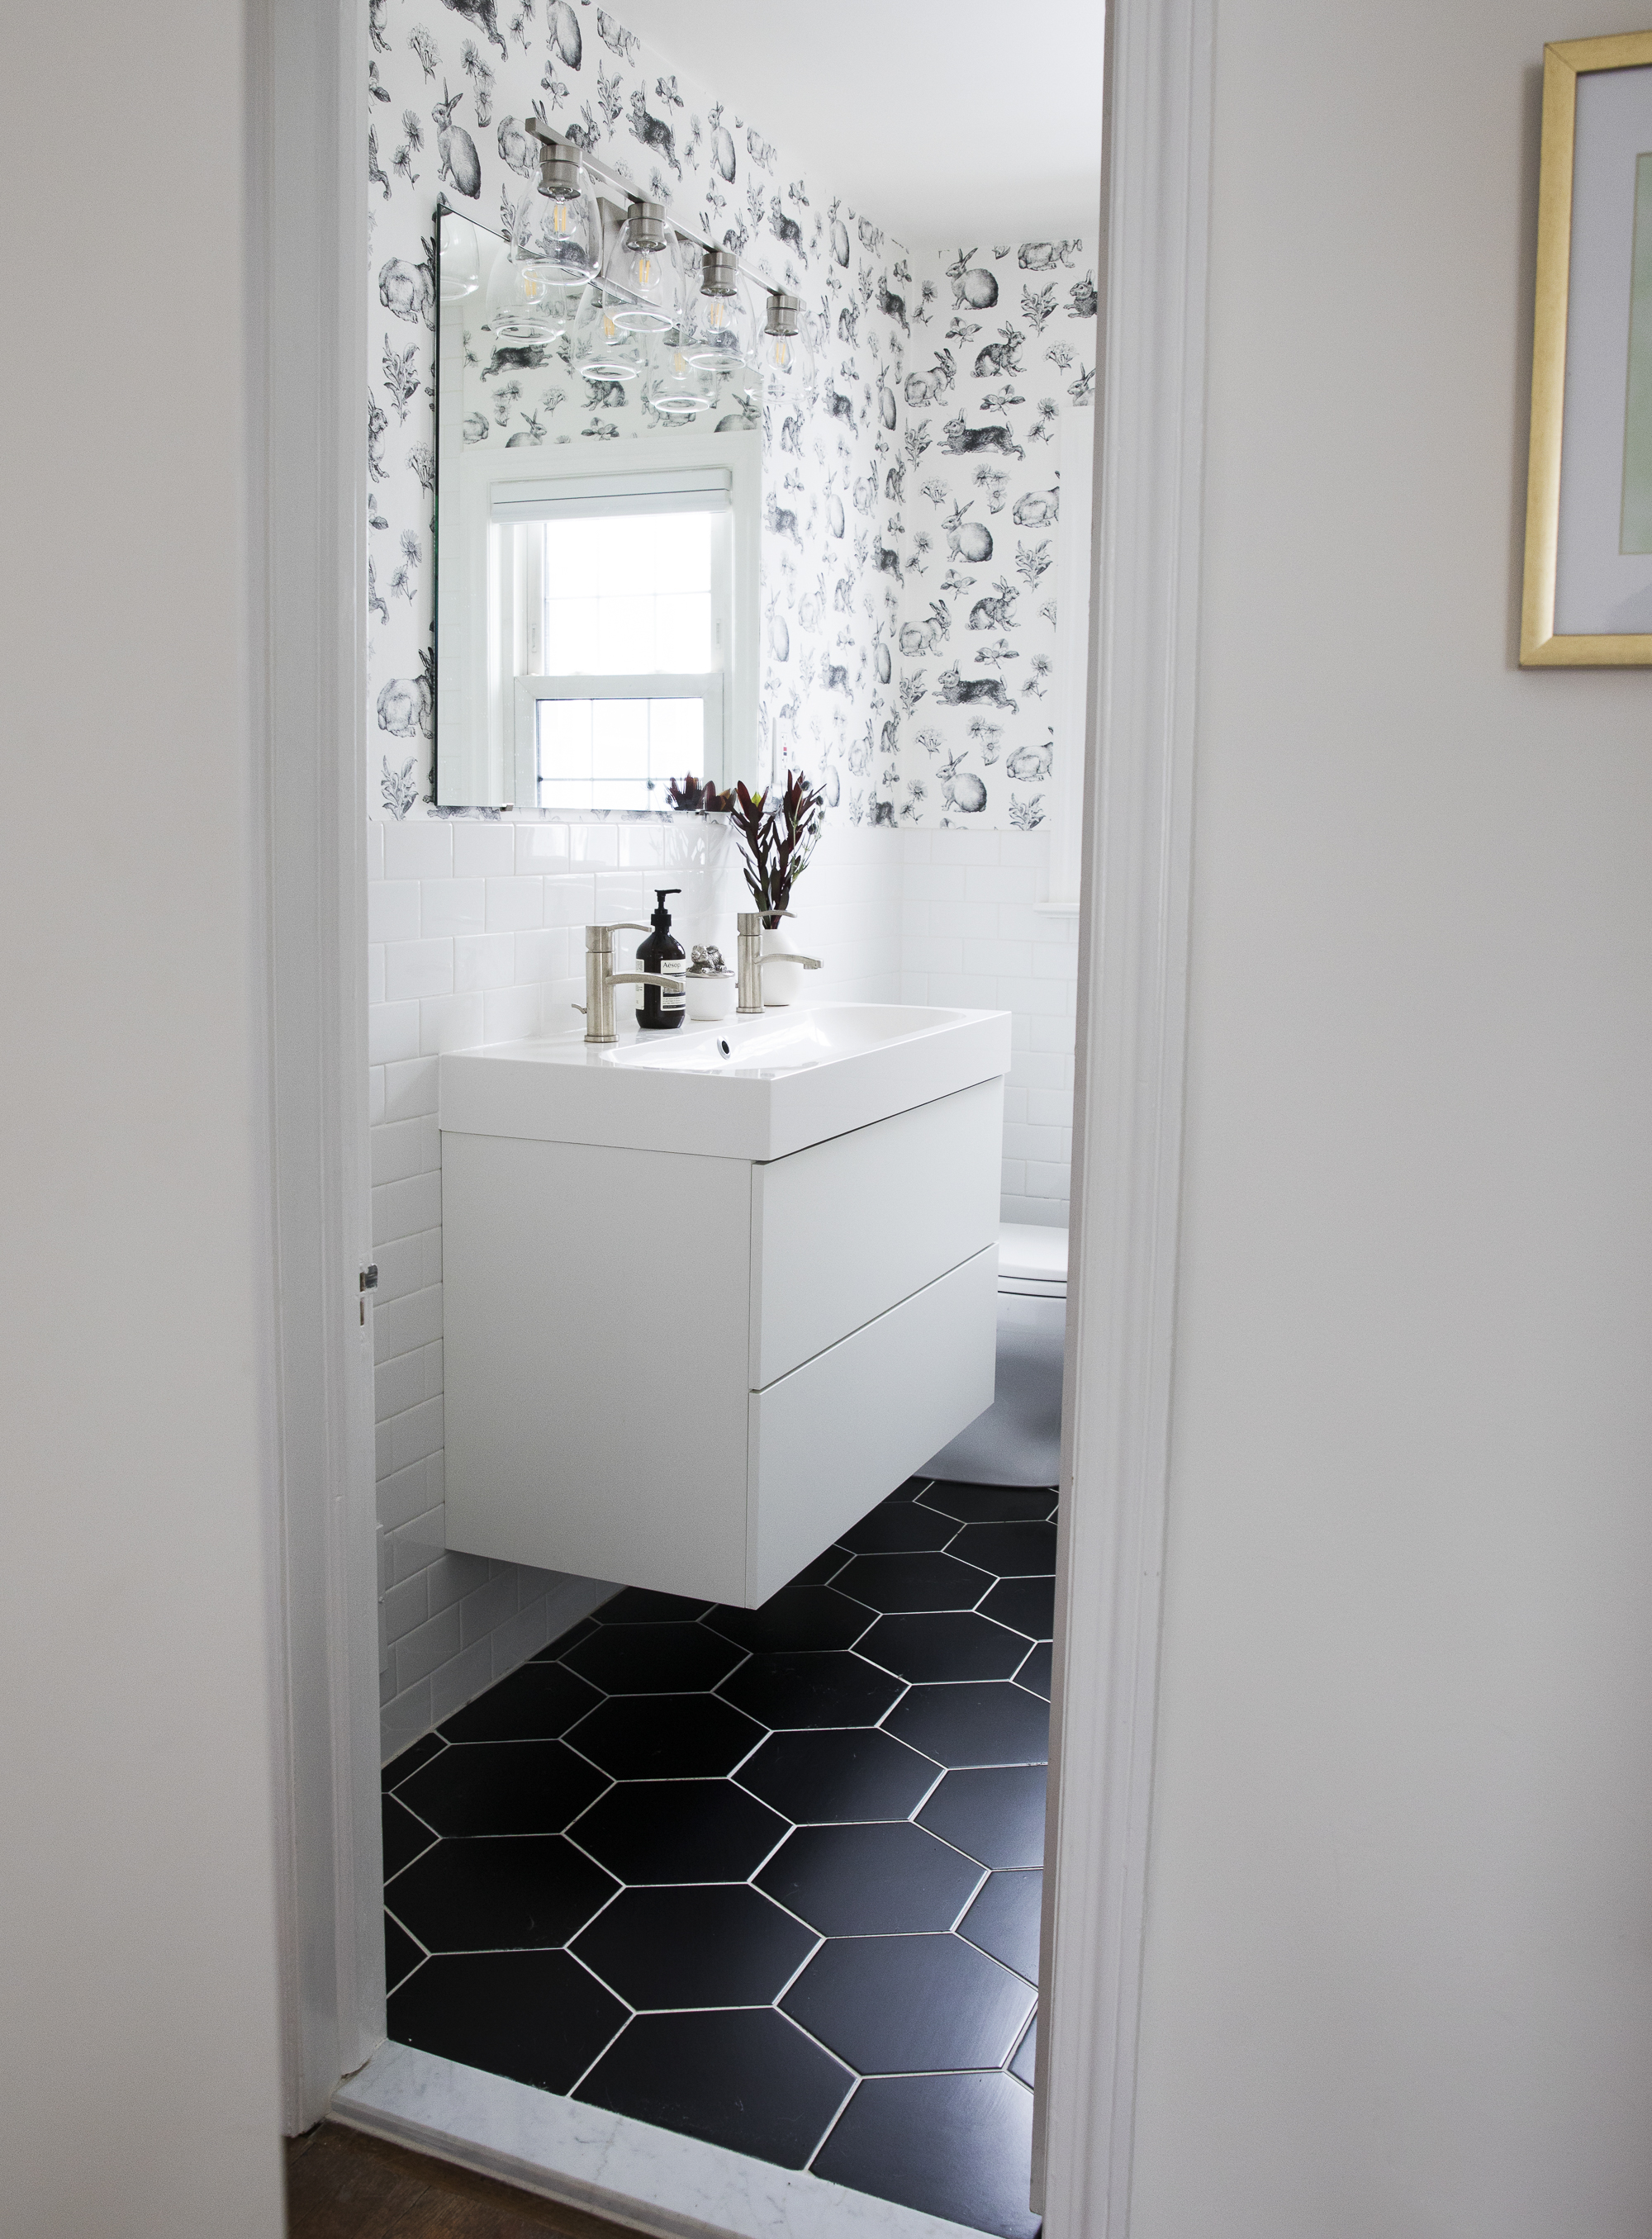 JG_Renovation2018_0259_BathroomHallway.jpg